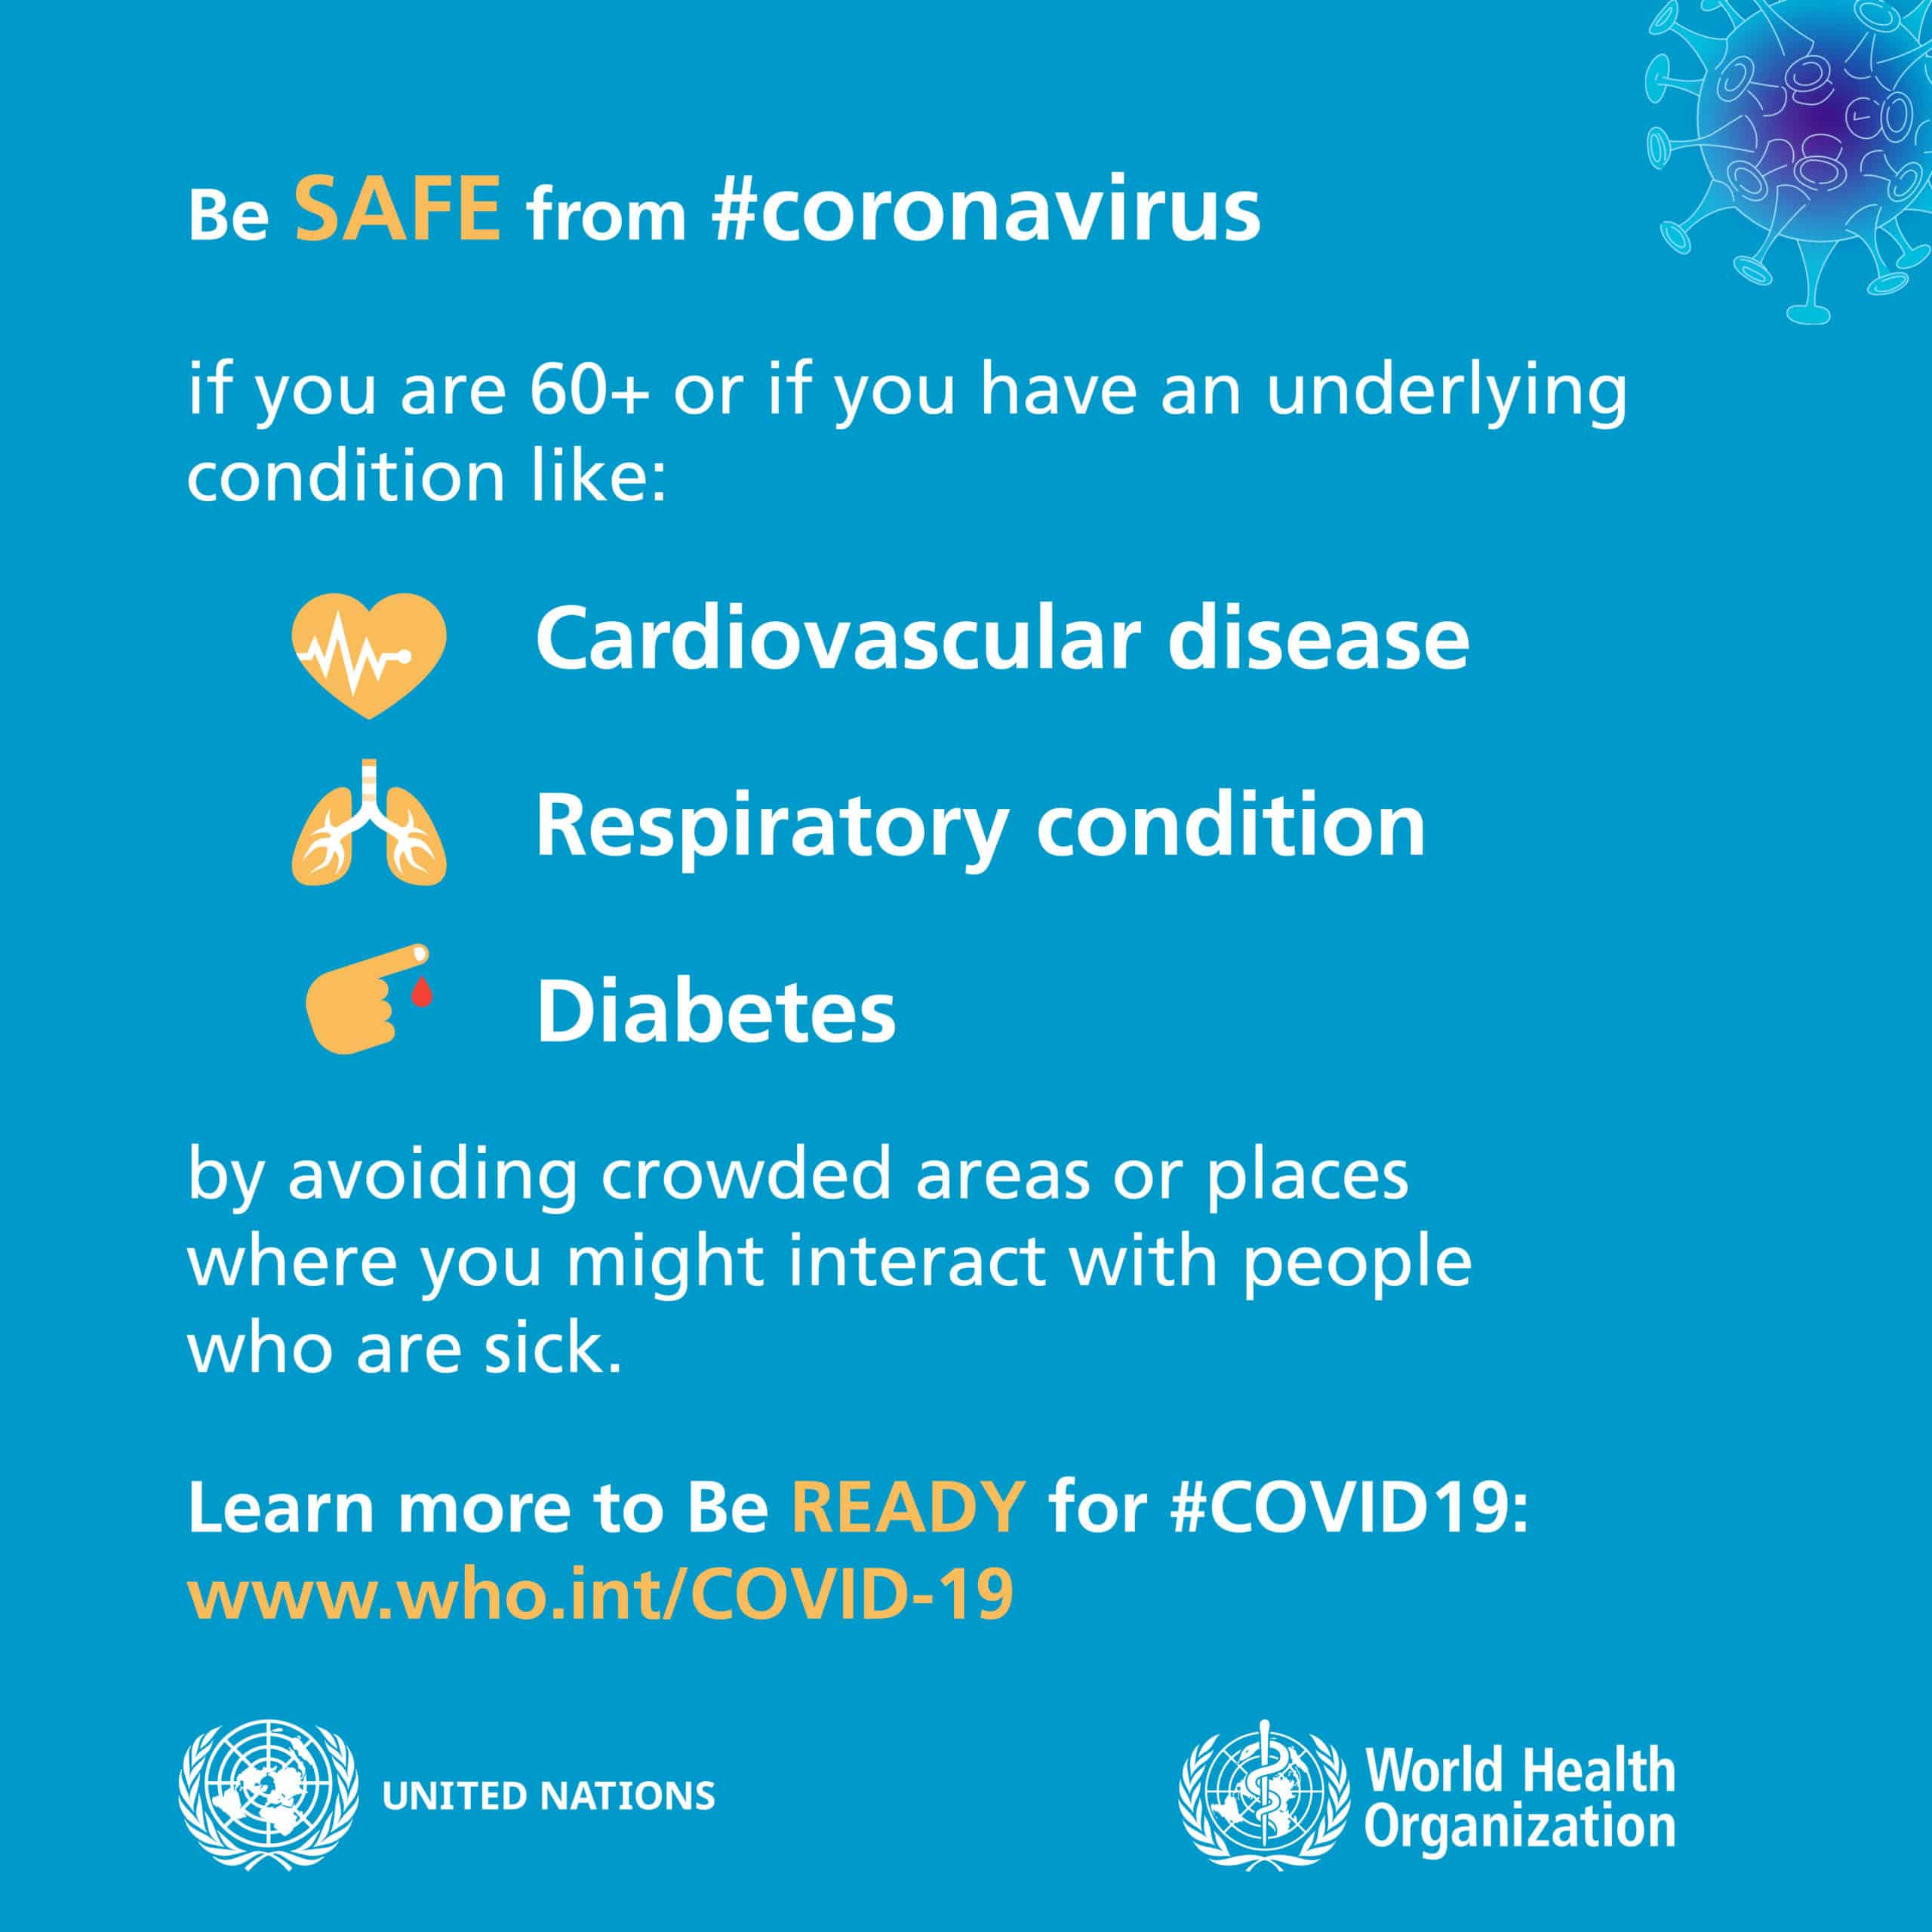 Poster made by the WHO with safety information about underlying conditions and risk factors for Coronavirus